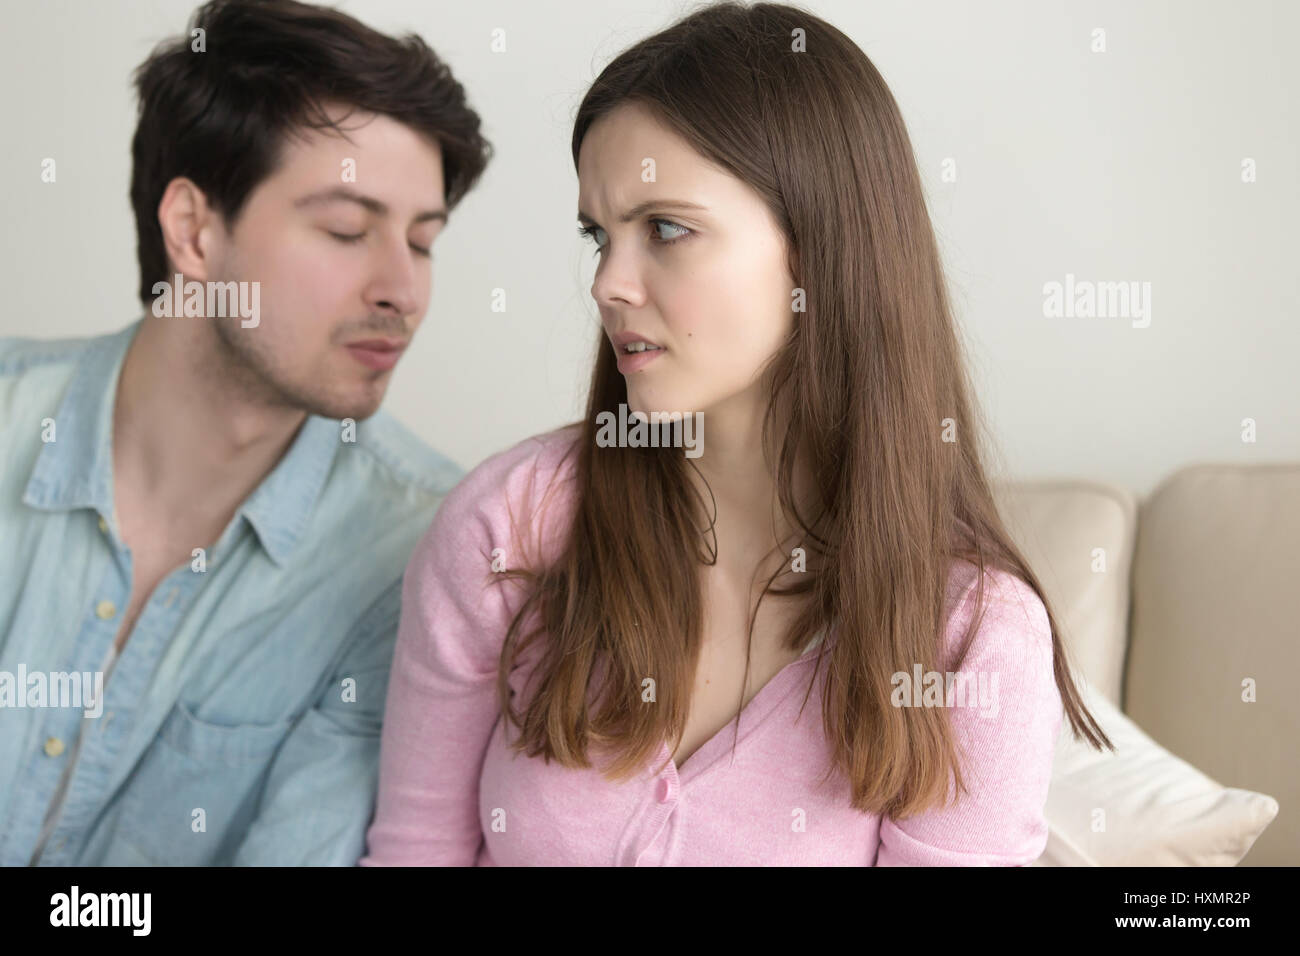 Man trying to kiss woman, she rejecting him, friend zone - Stock Image